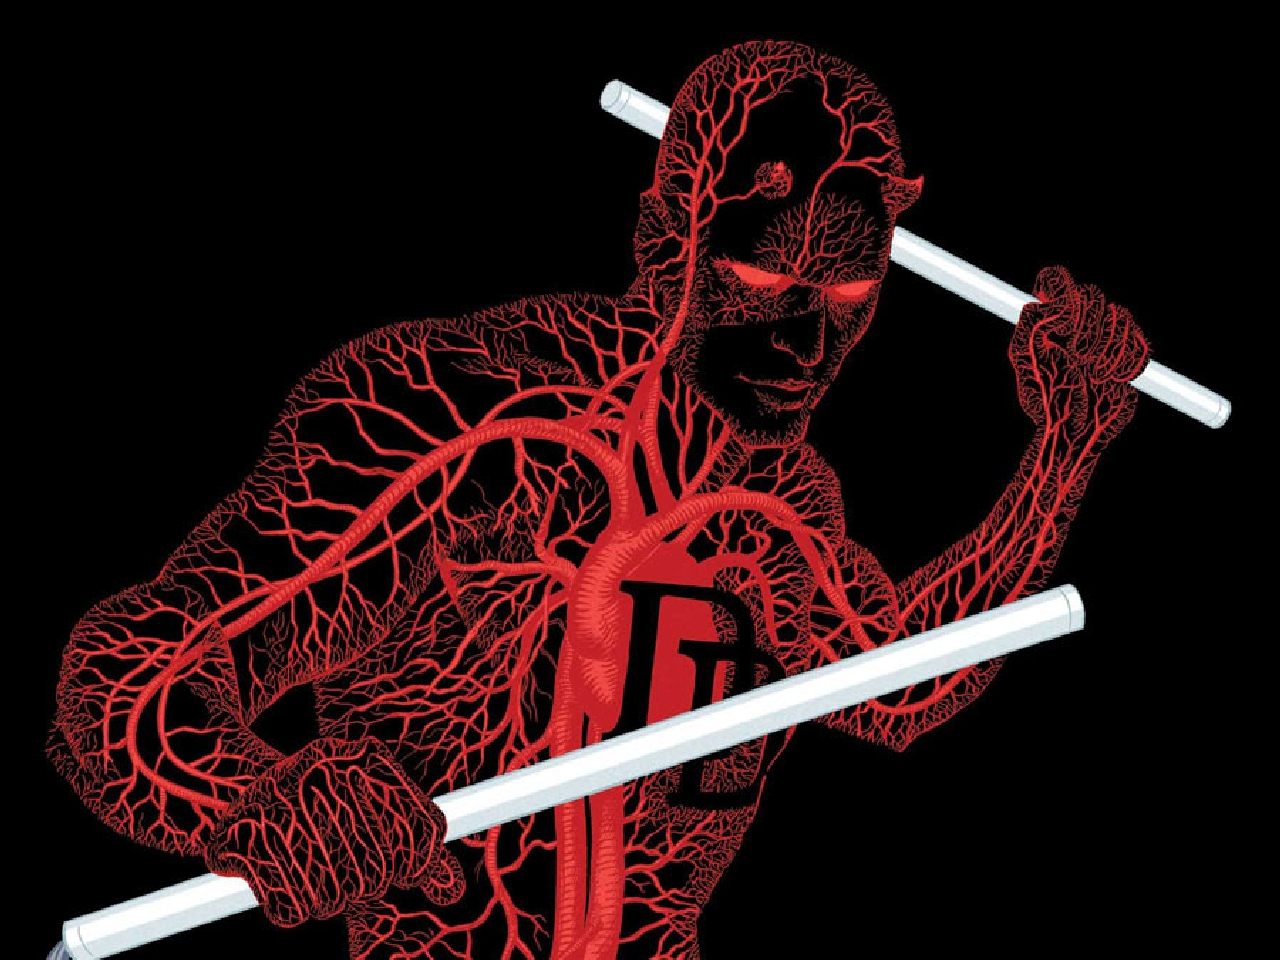 Daredevil Logo Wallpaper Download